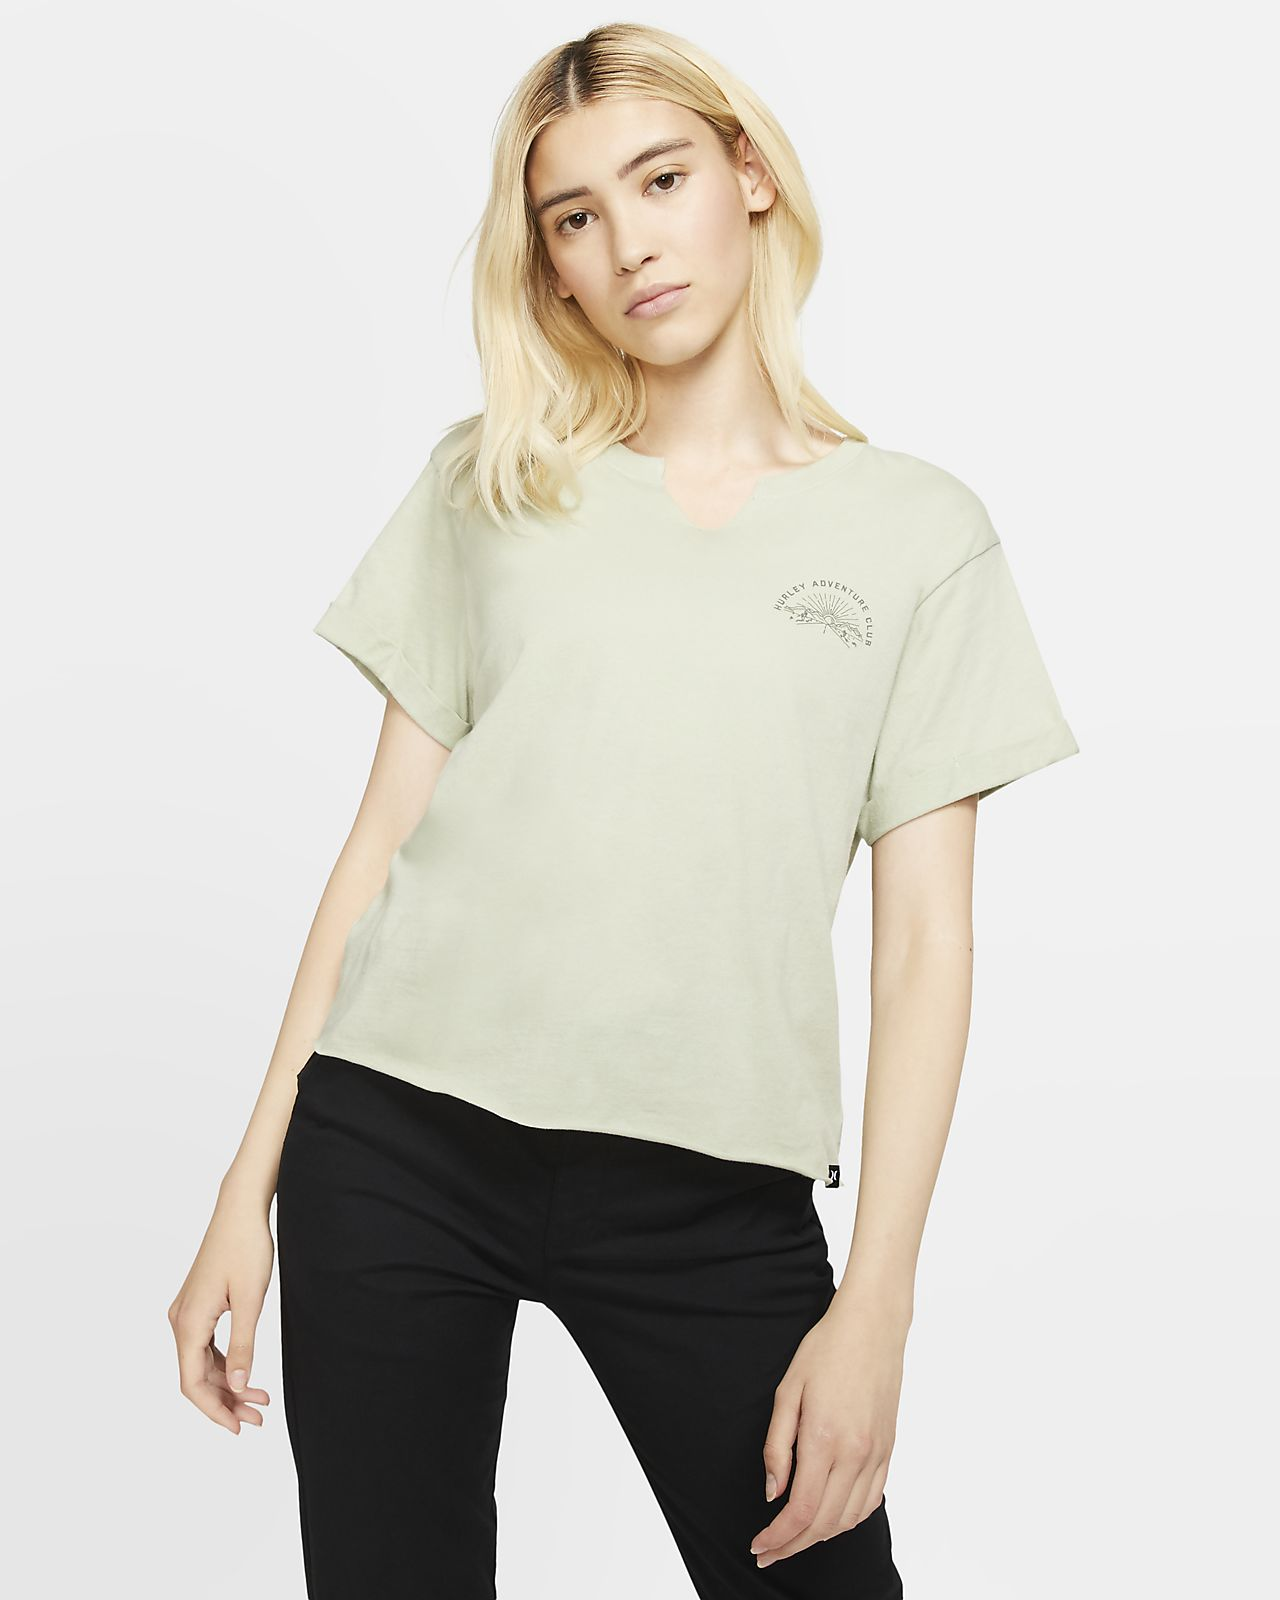 Hurley Adventure Club Women's Short-Sleeve Cropped Crew